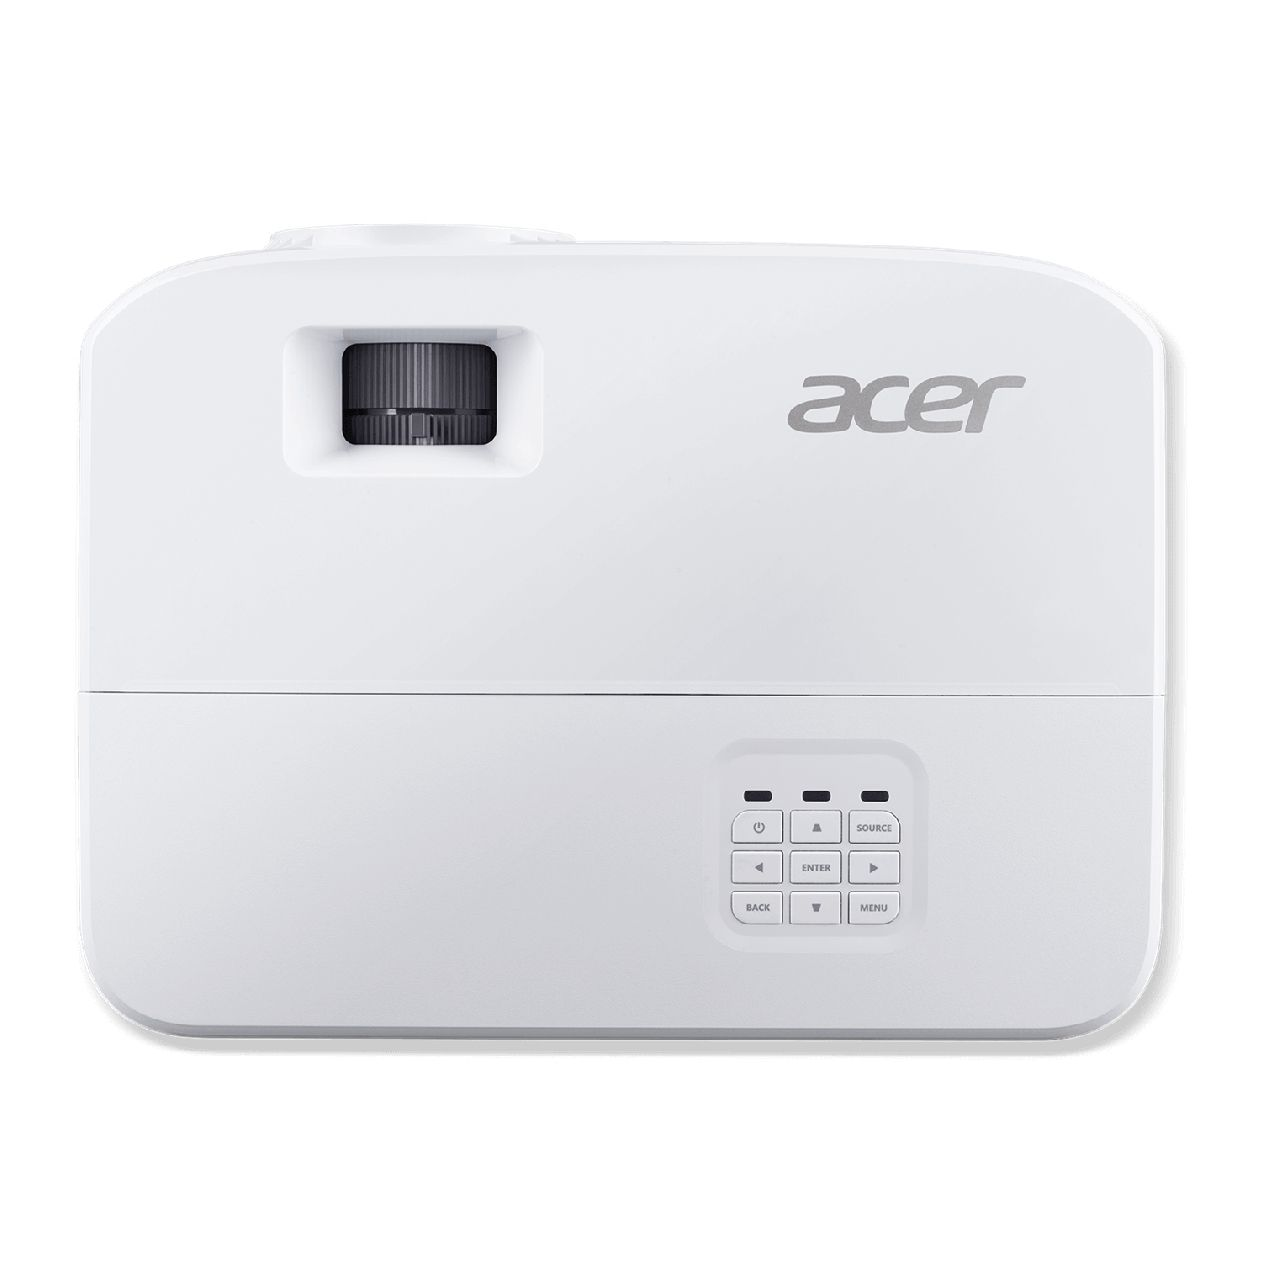 Acer P1350w